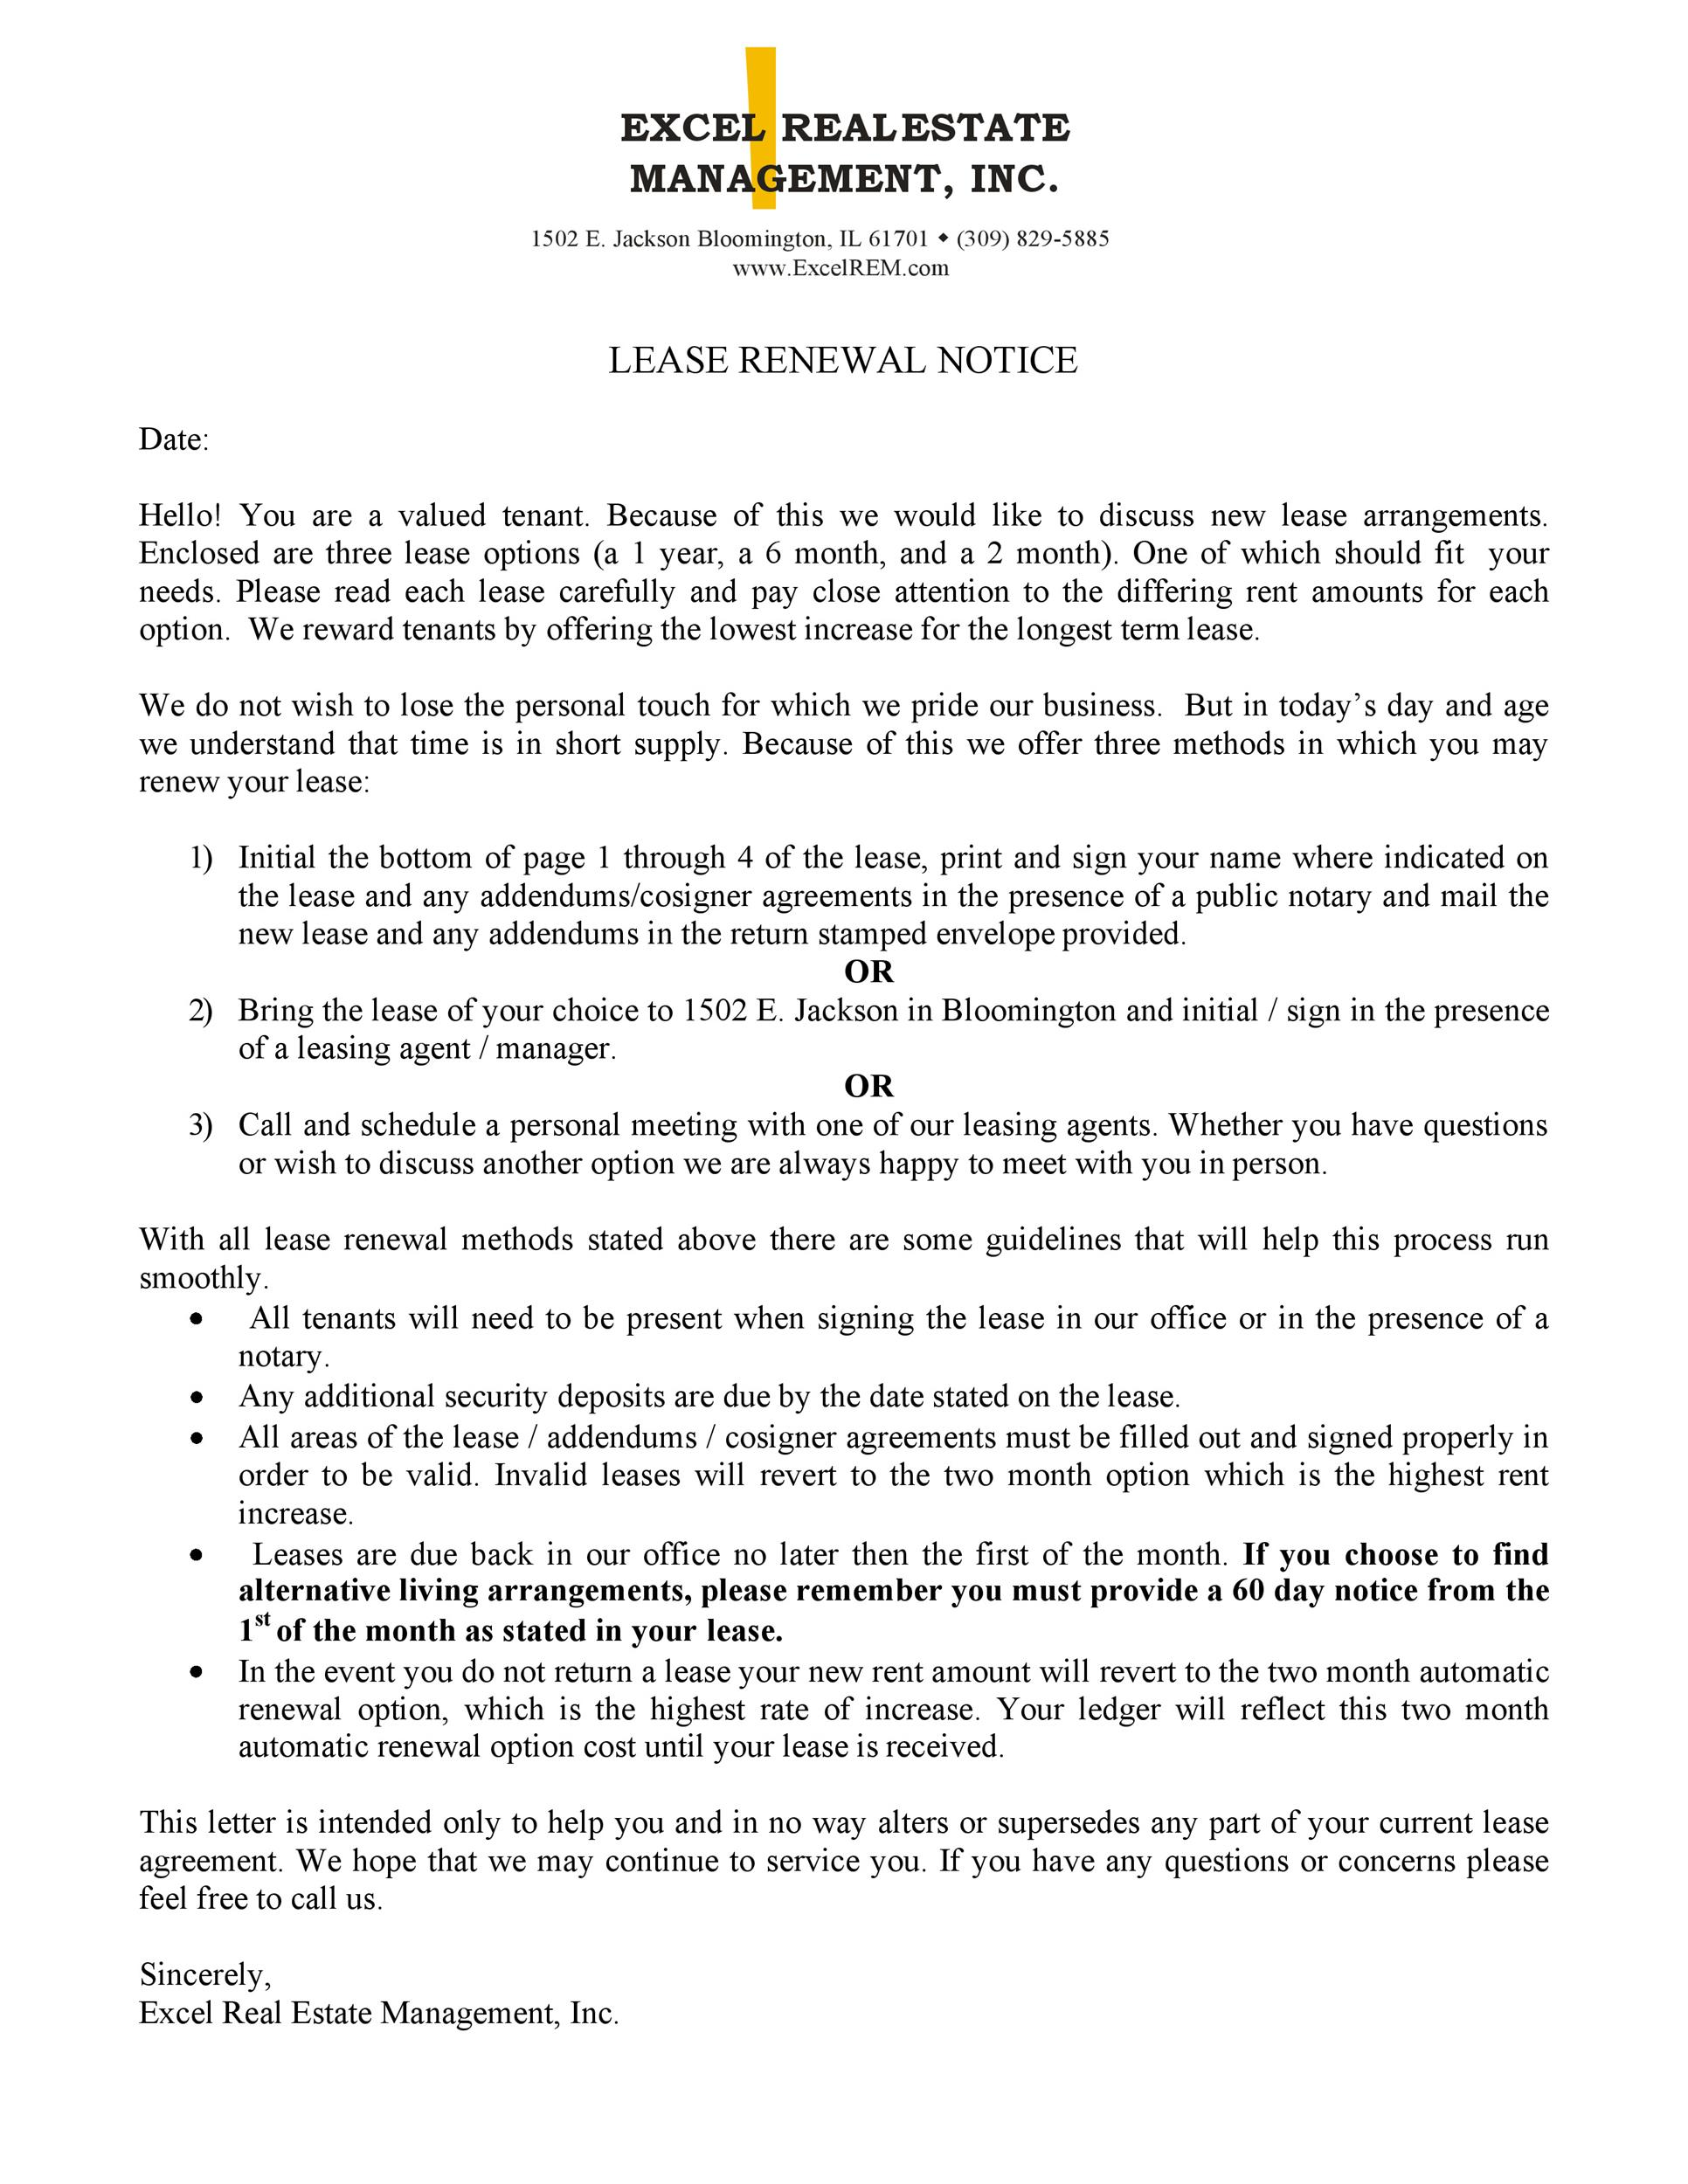 Sample Letter Landlord To Tenant Not Renewing Lease from templatelab.com